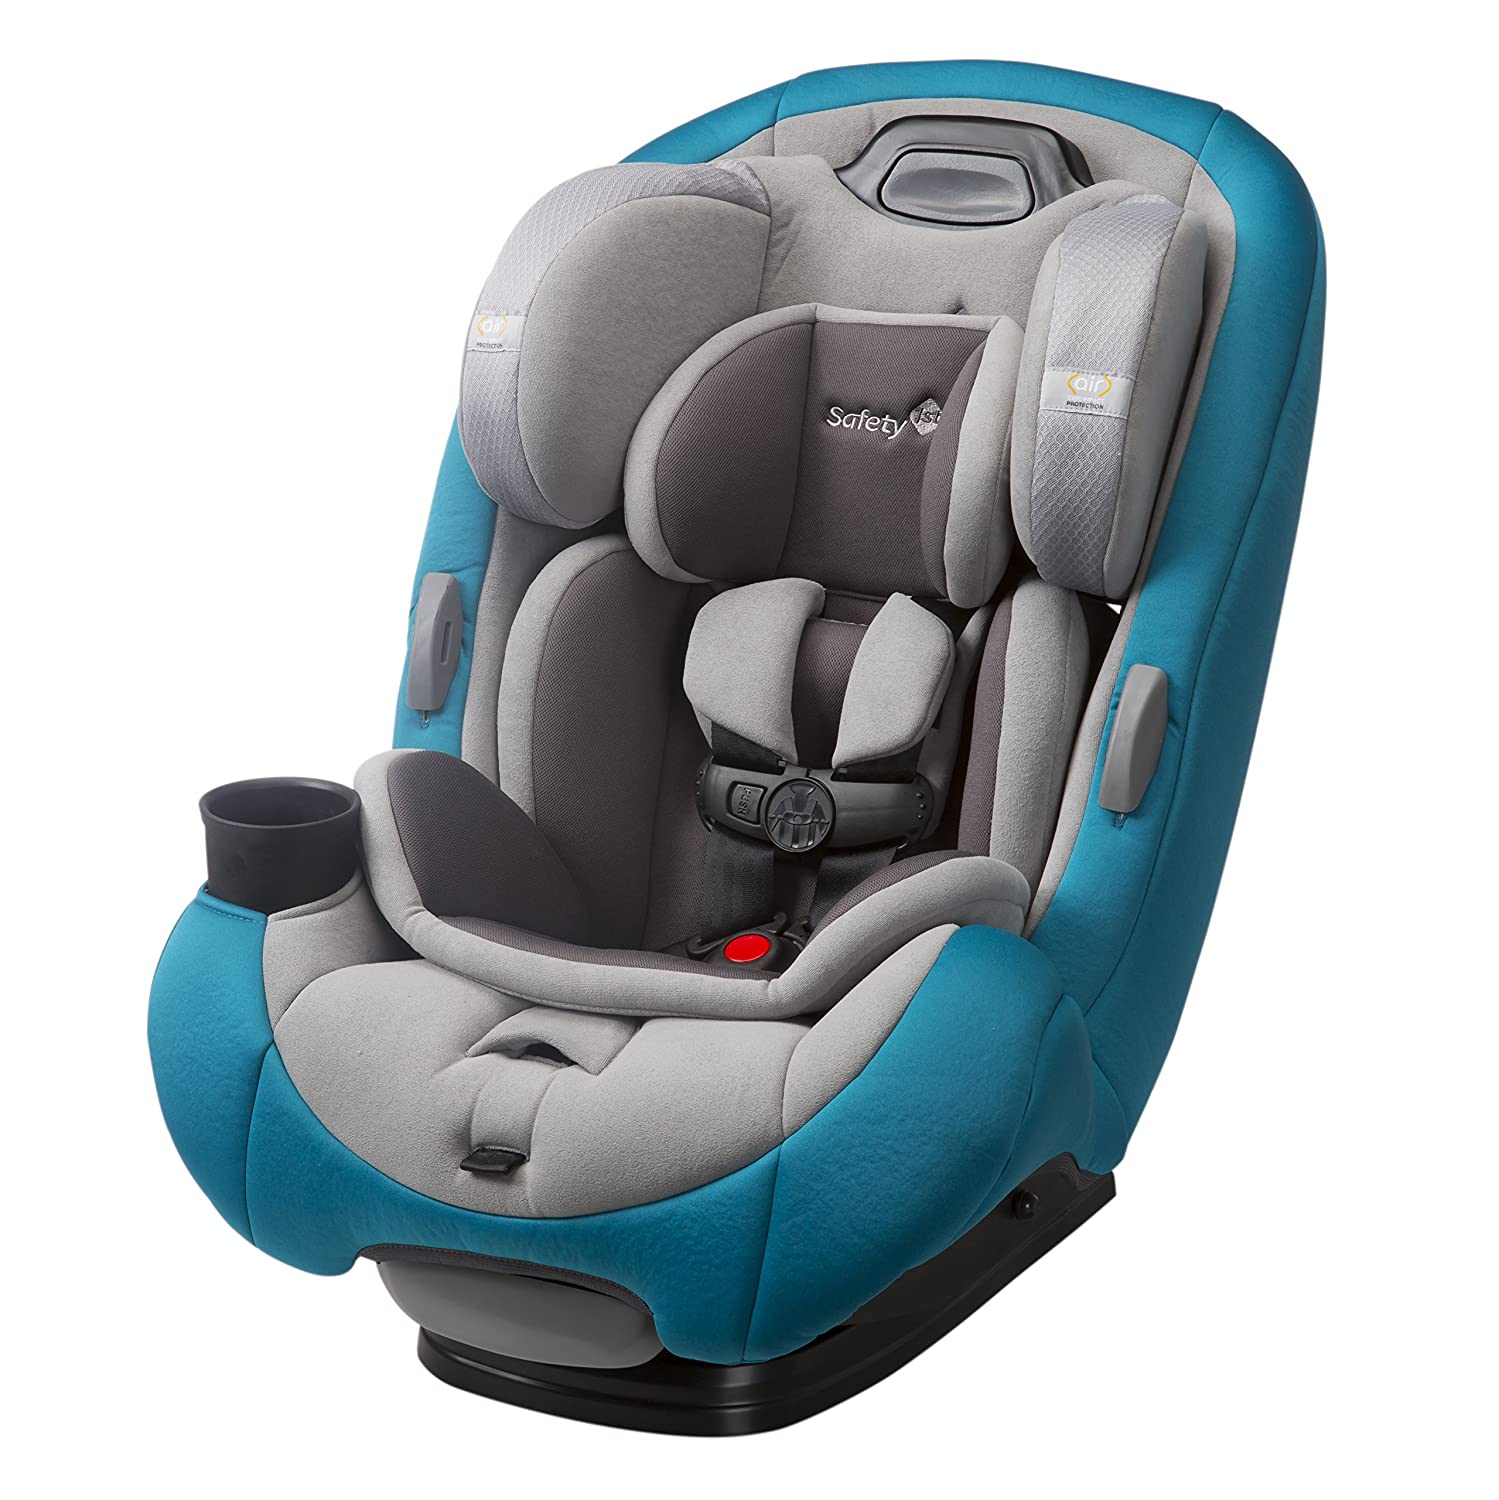 Safety 1st Grow and Go Air Sport 3-in-1 Car Seat, Mineral Water